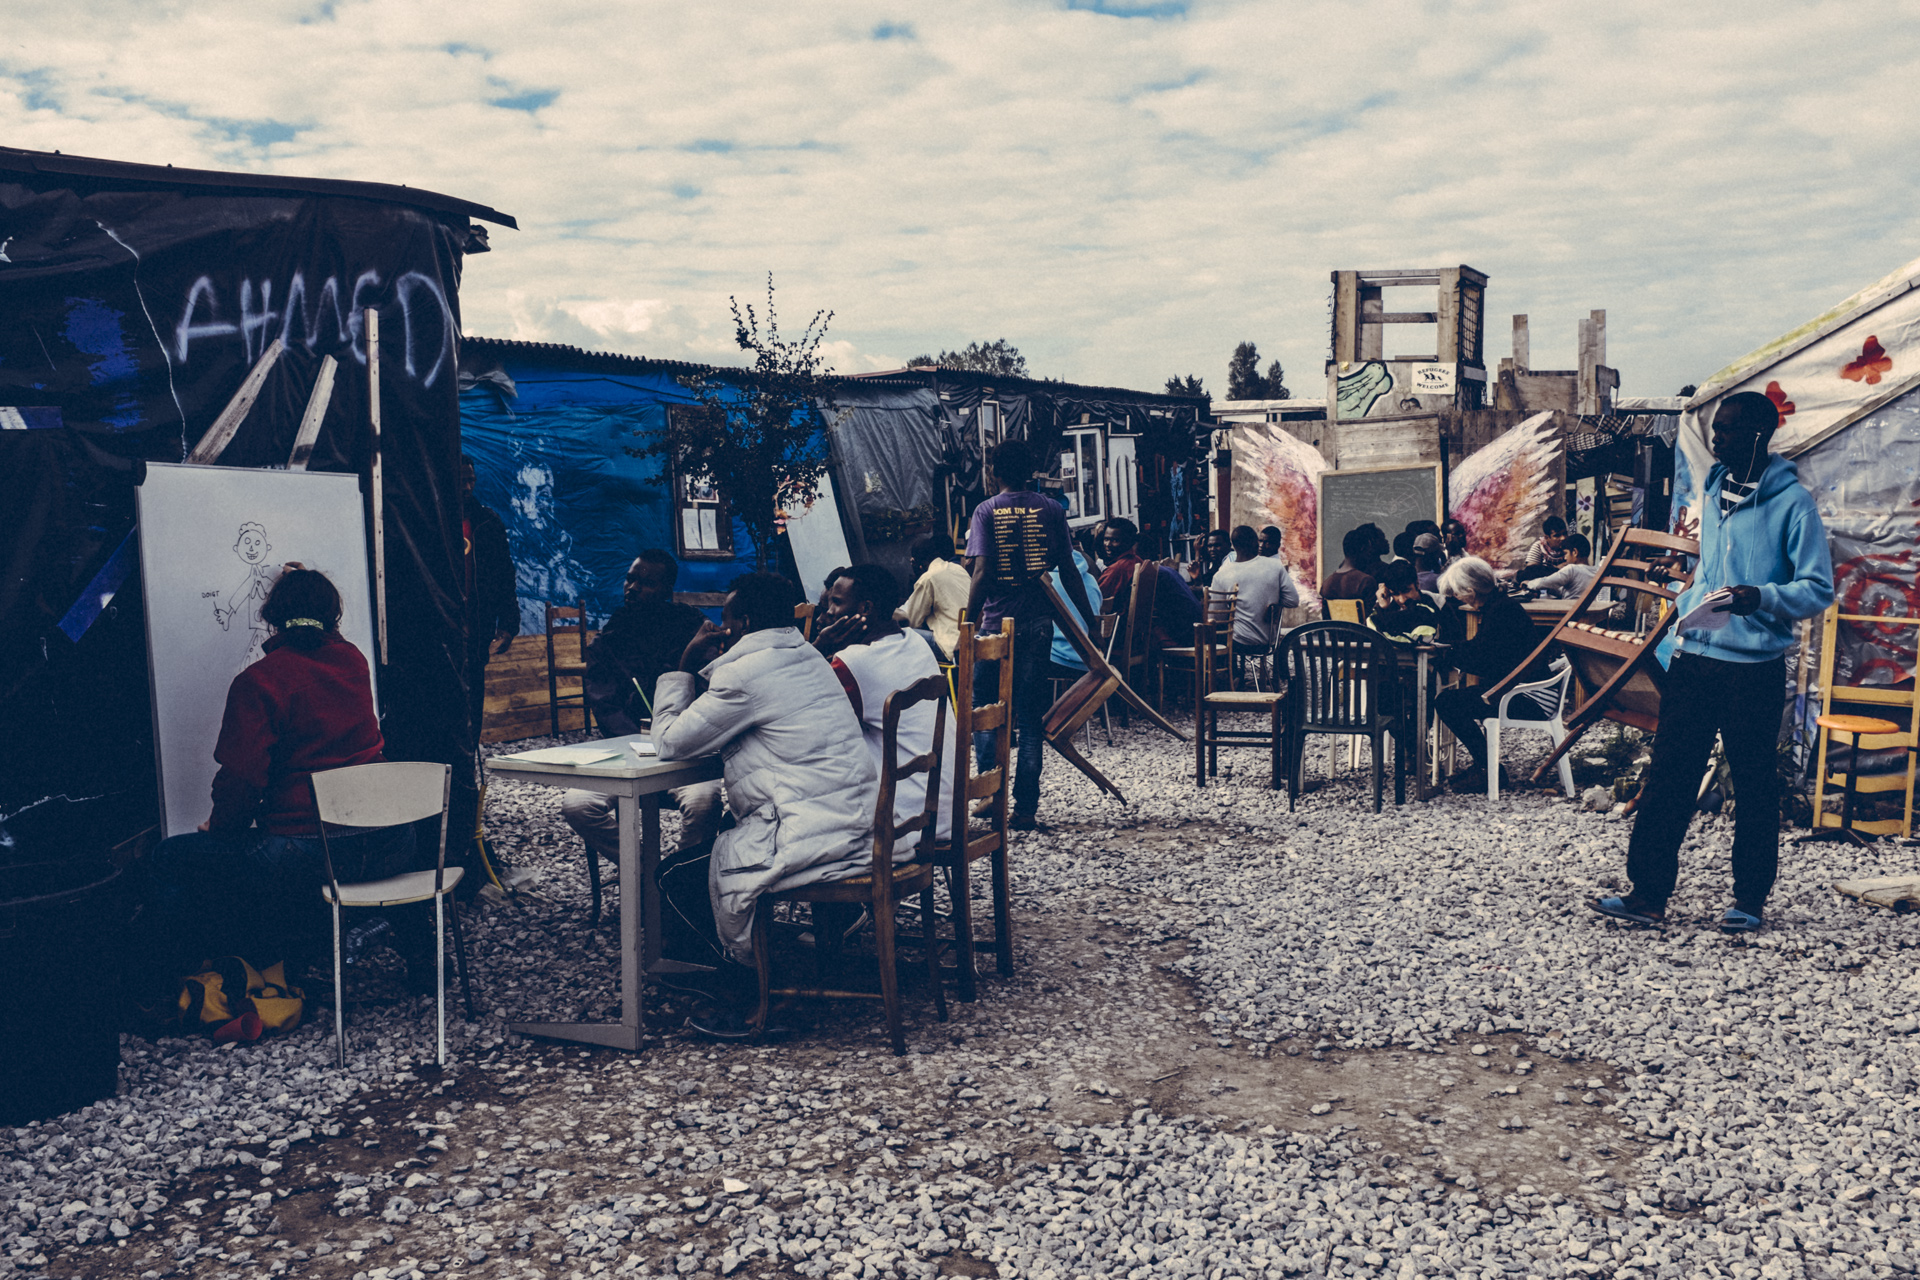 A class in-session at L'Ecole Laique du Chemin des Dunes in the Jungle. Calais, France. 2016.